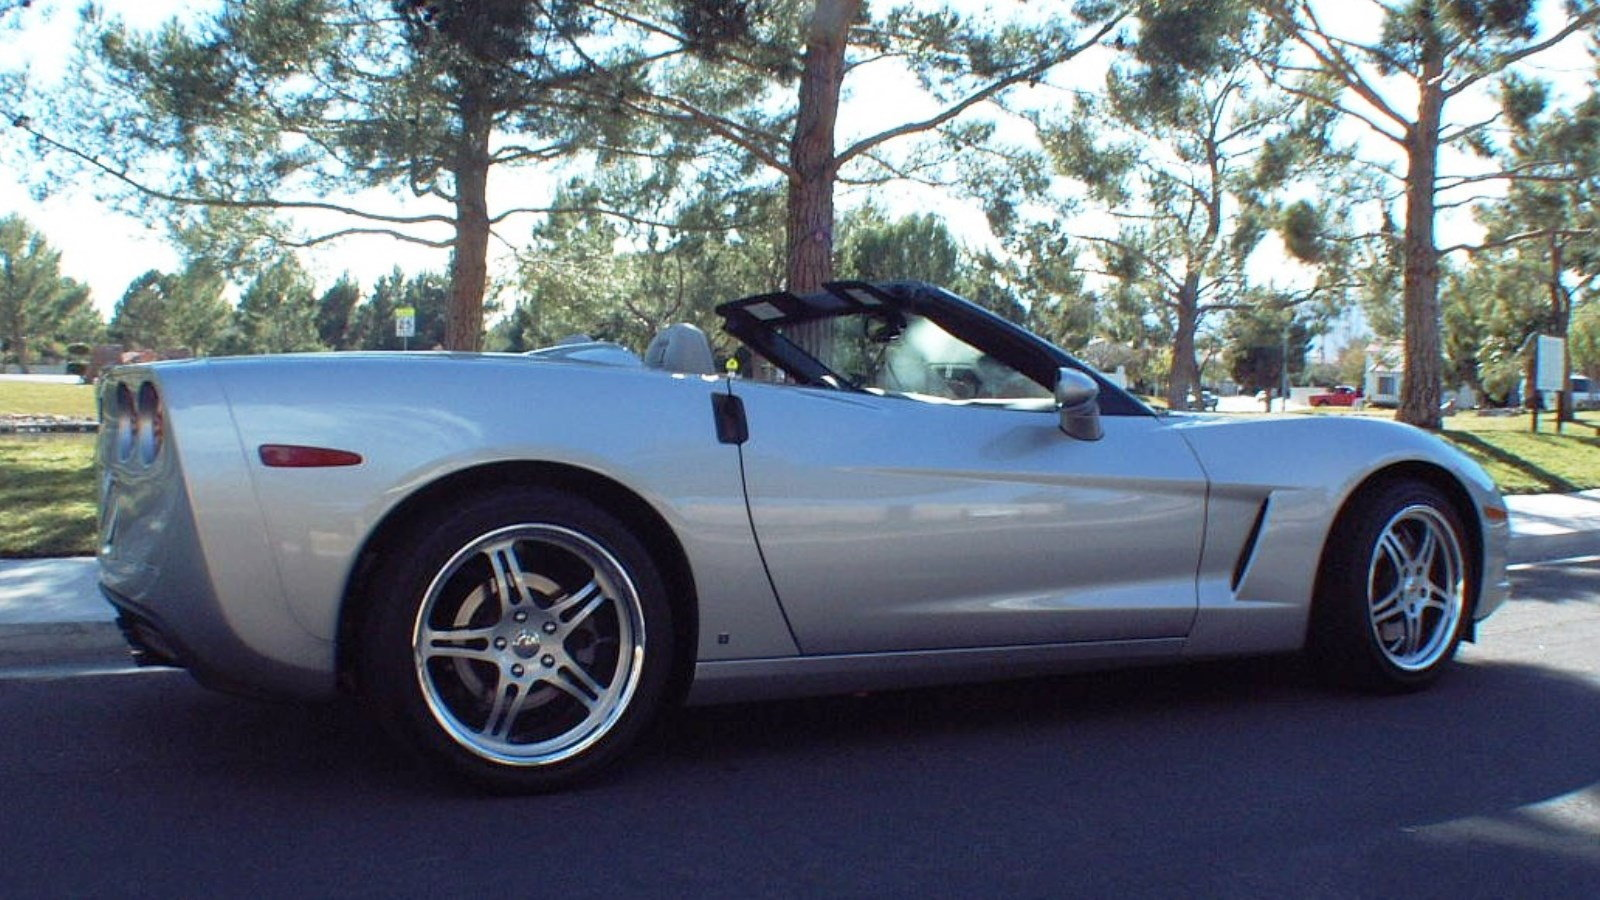 Aftermarket Wheels,C6 Corvette, Factory Wheels